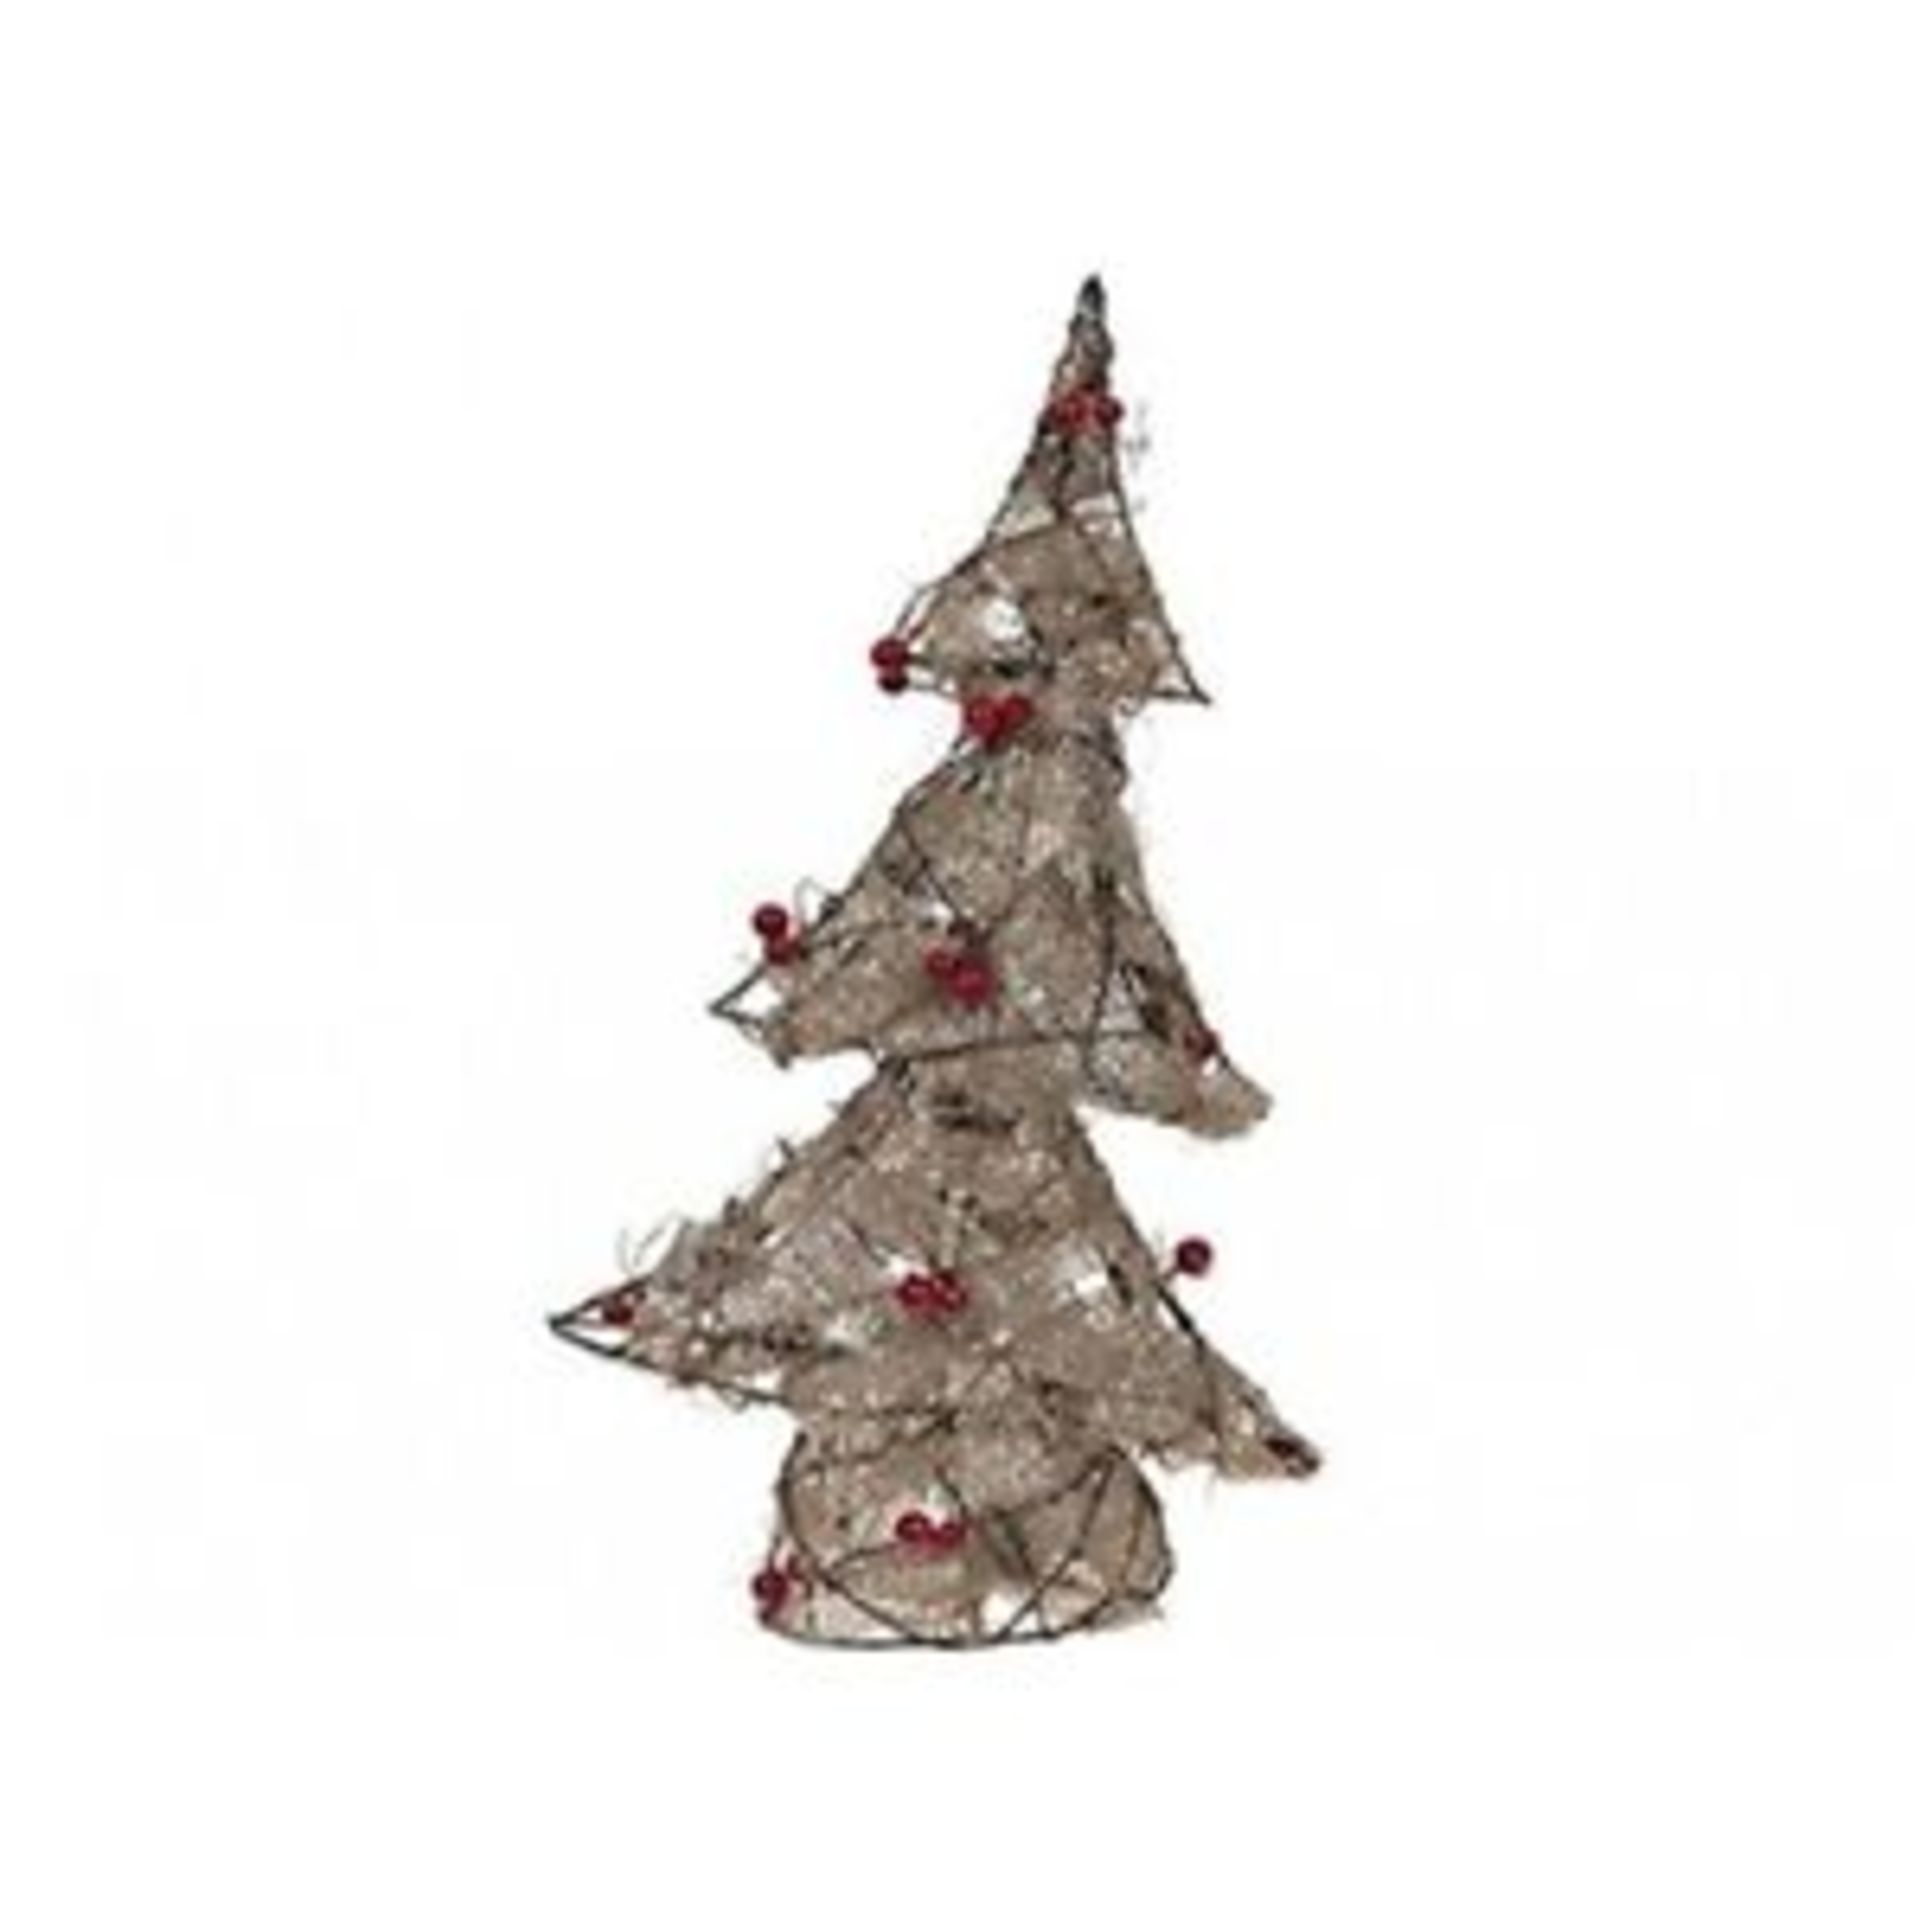 Lot 18080 - V Brand New 45cm Pre Lit Jute Wrap Tree With Berries - Battery Operated